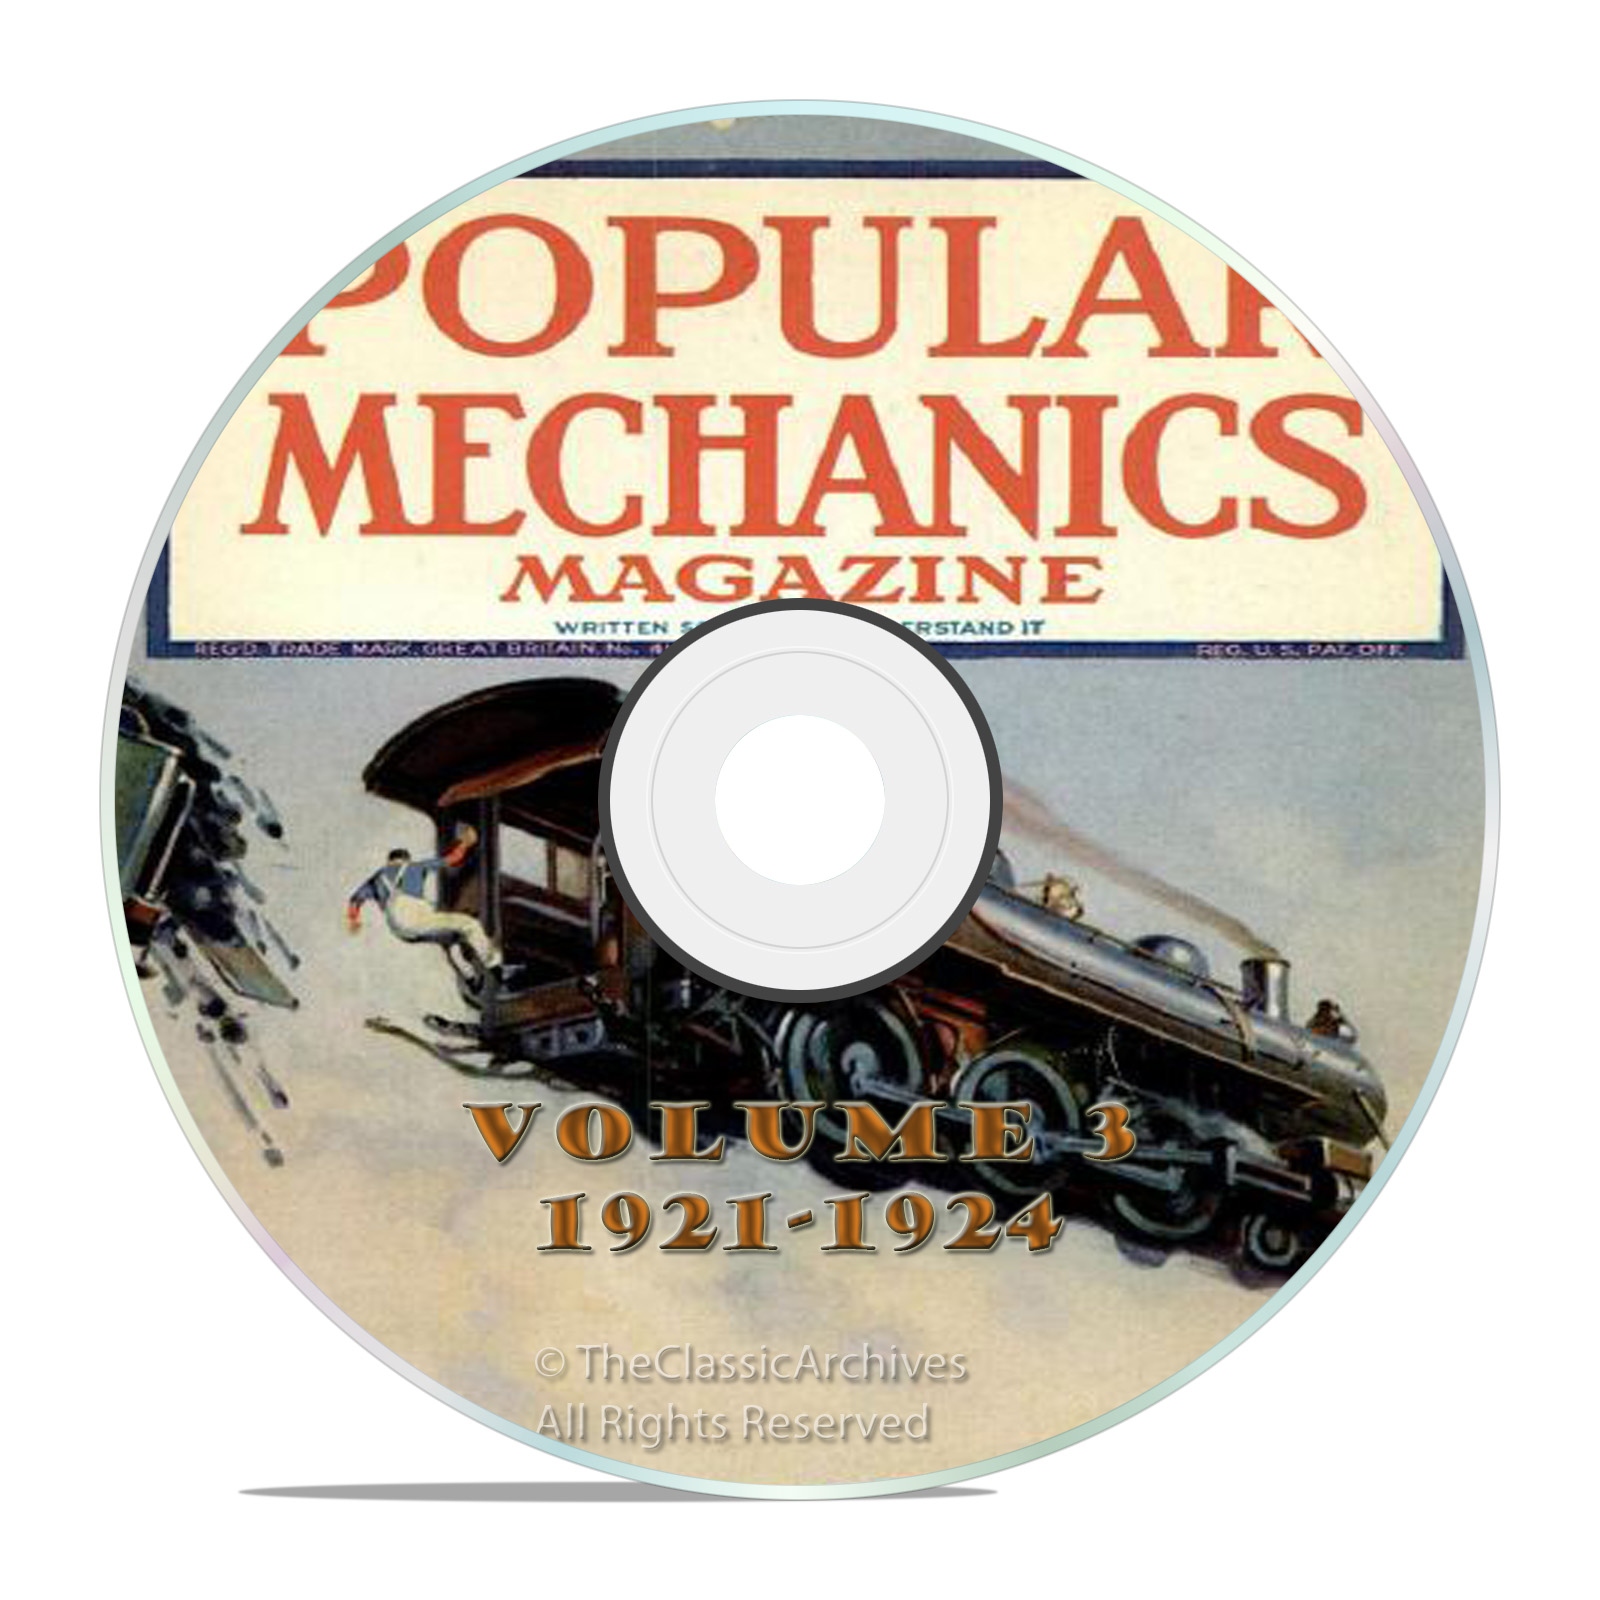 Vintage Popular Mechanics Magazine, Volume 3 DVD, 1921-1924. 44 issues